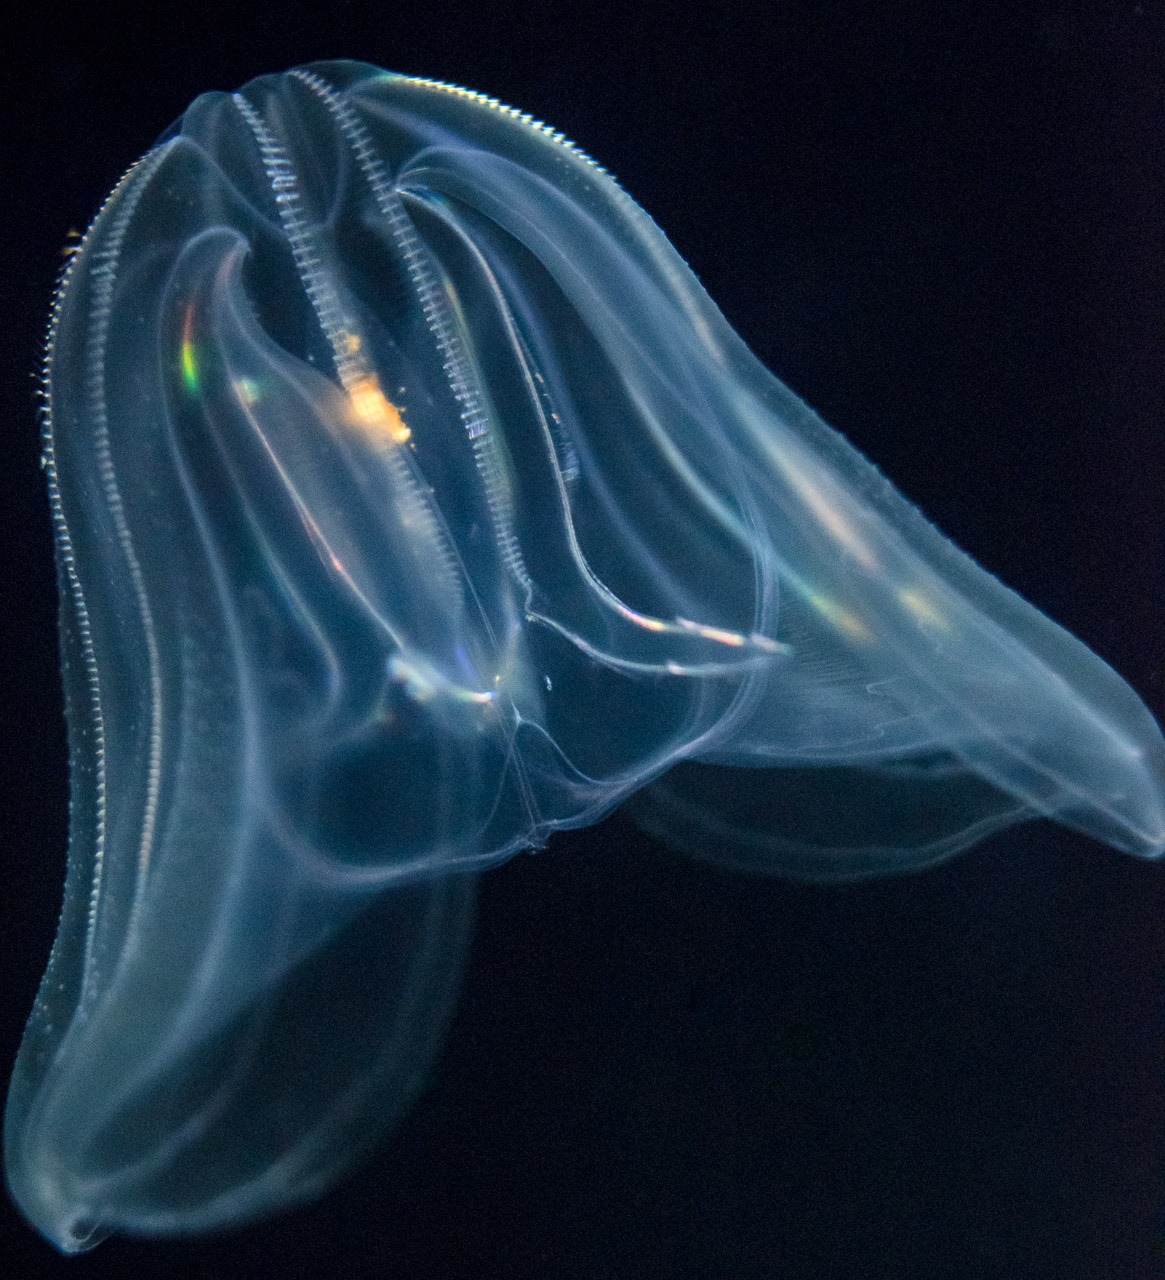 Comb Jelly Dave Wilson Photography